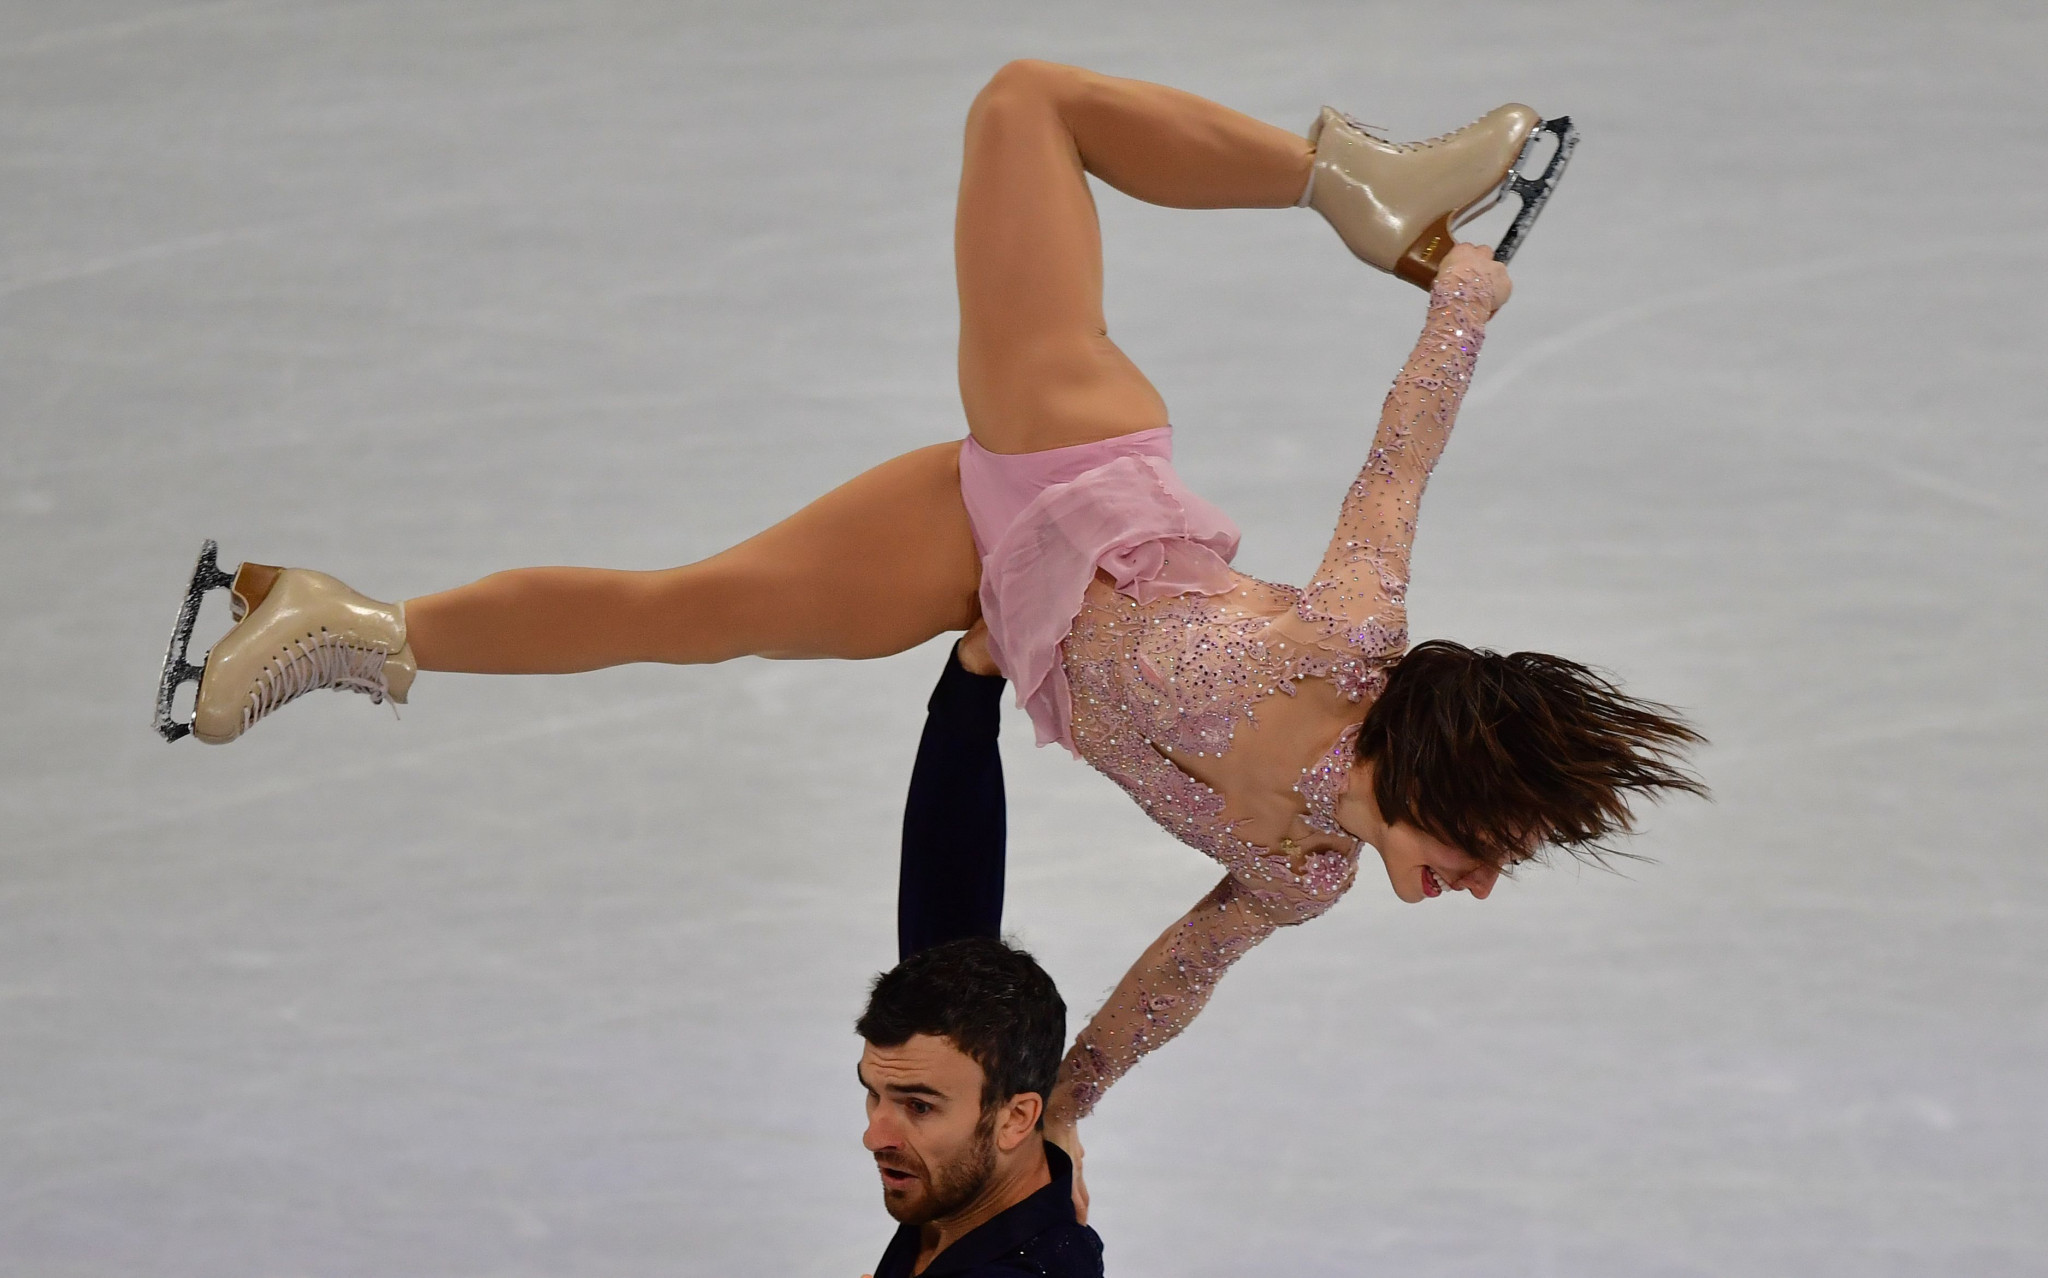 Two-time world champions Meagan Duhamel and Eric Radford of Canada lead the pairs start list ©Getty Images